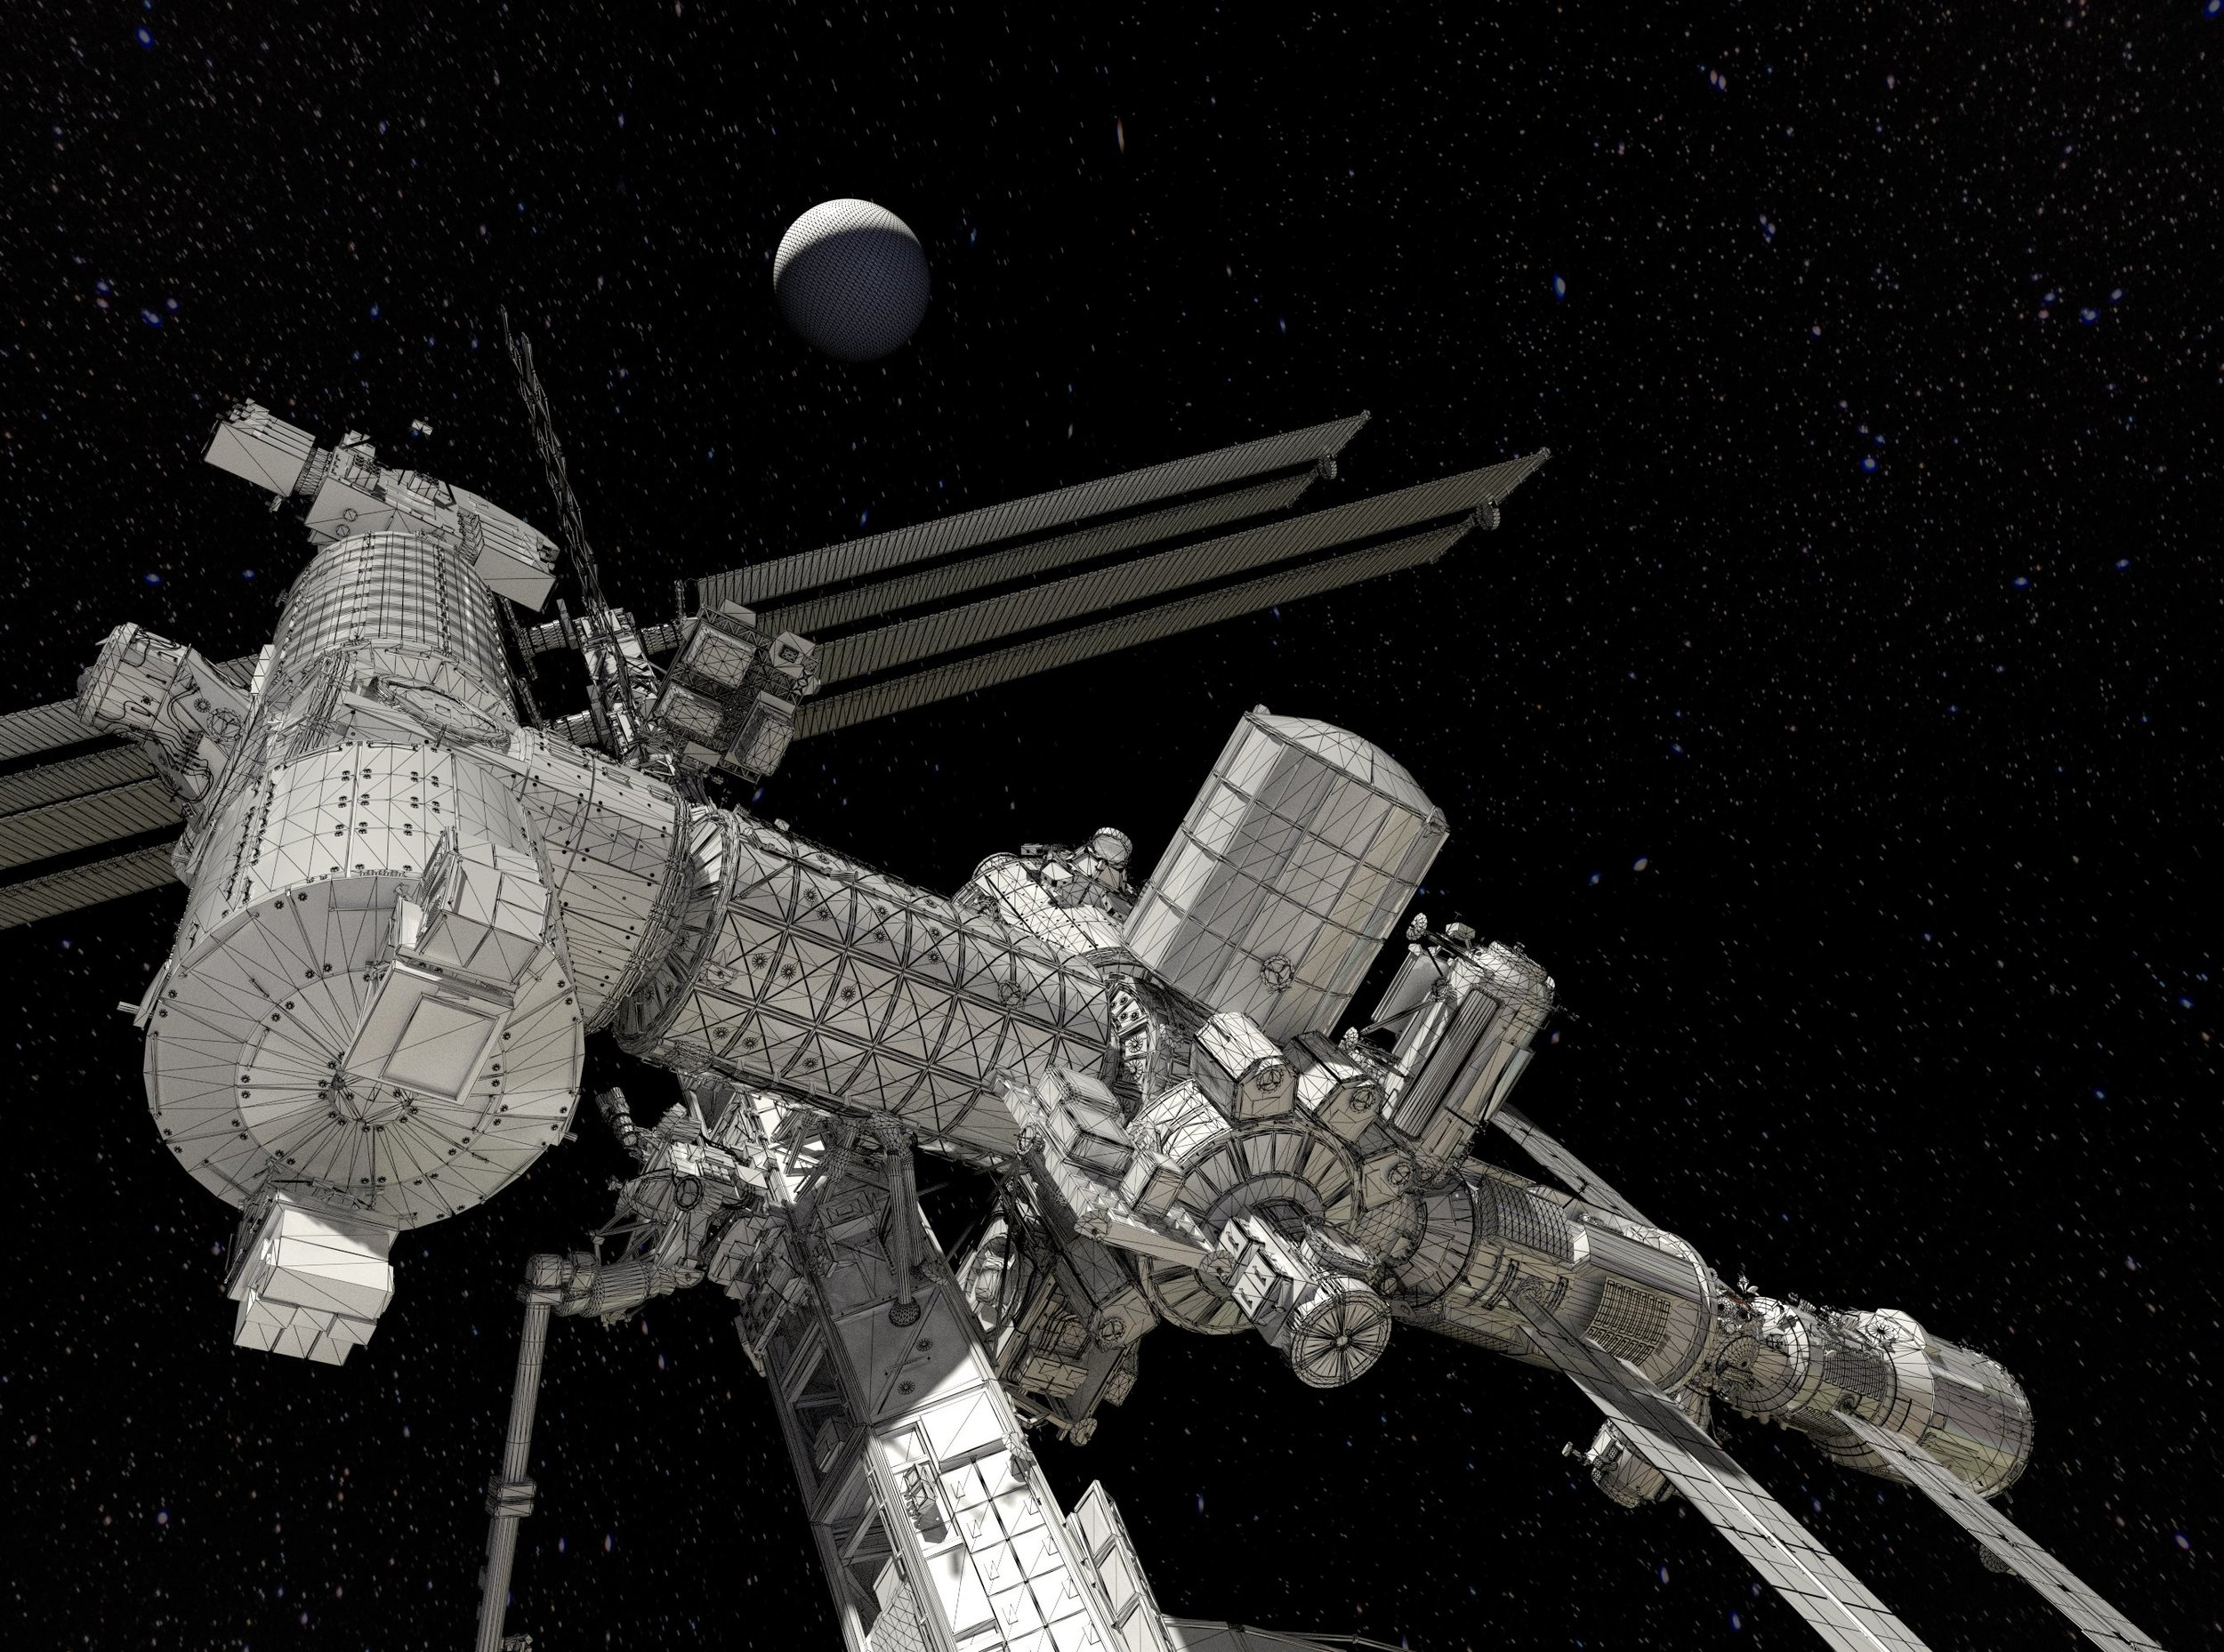 Awesome ISS model by Chris Kuhn